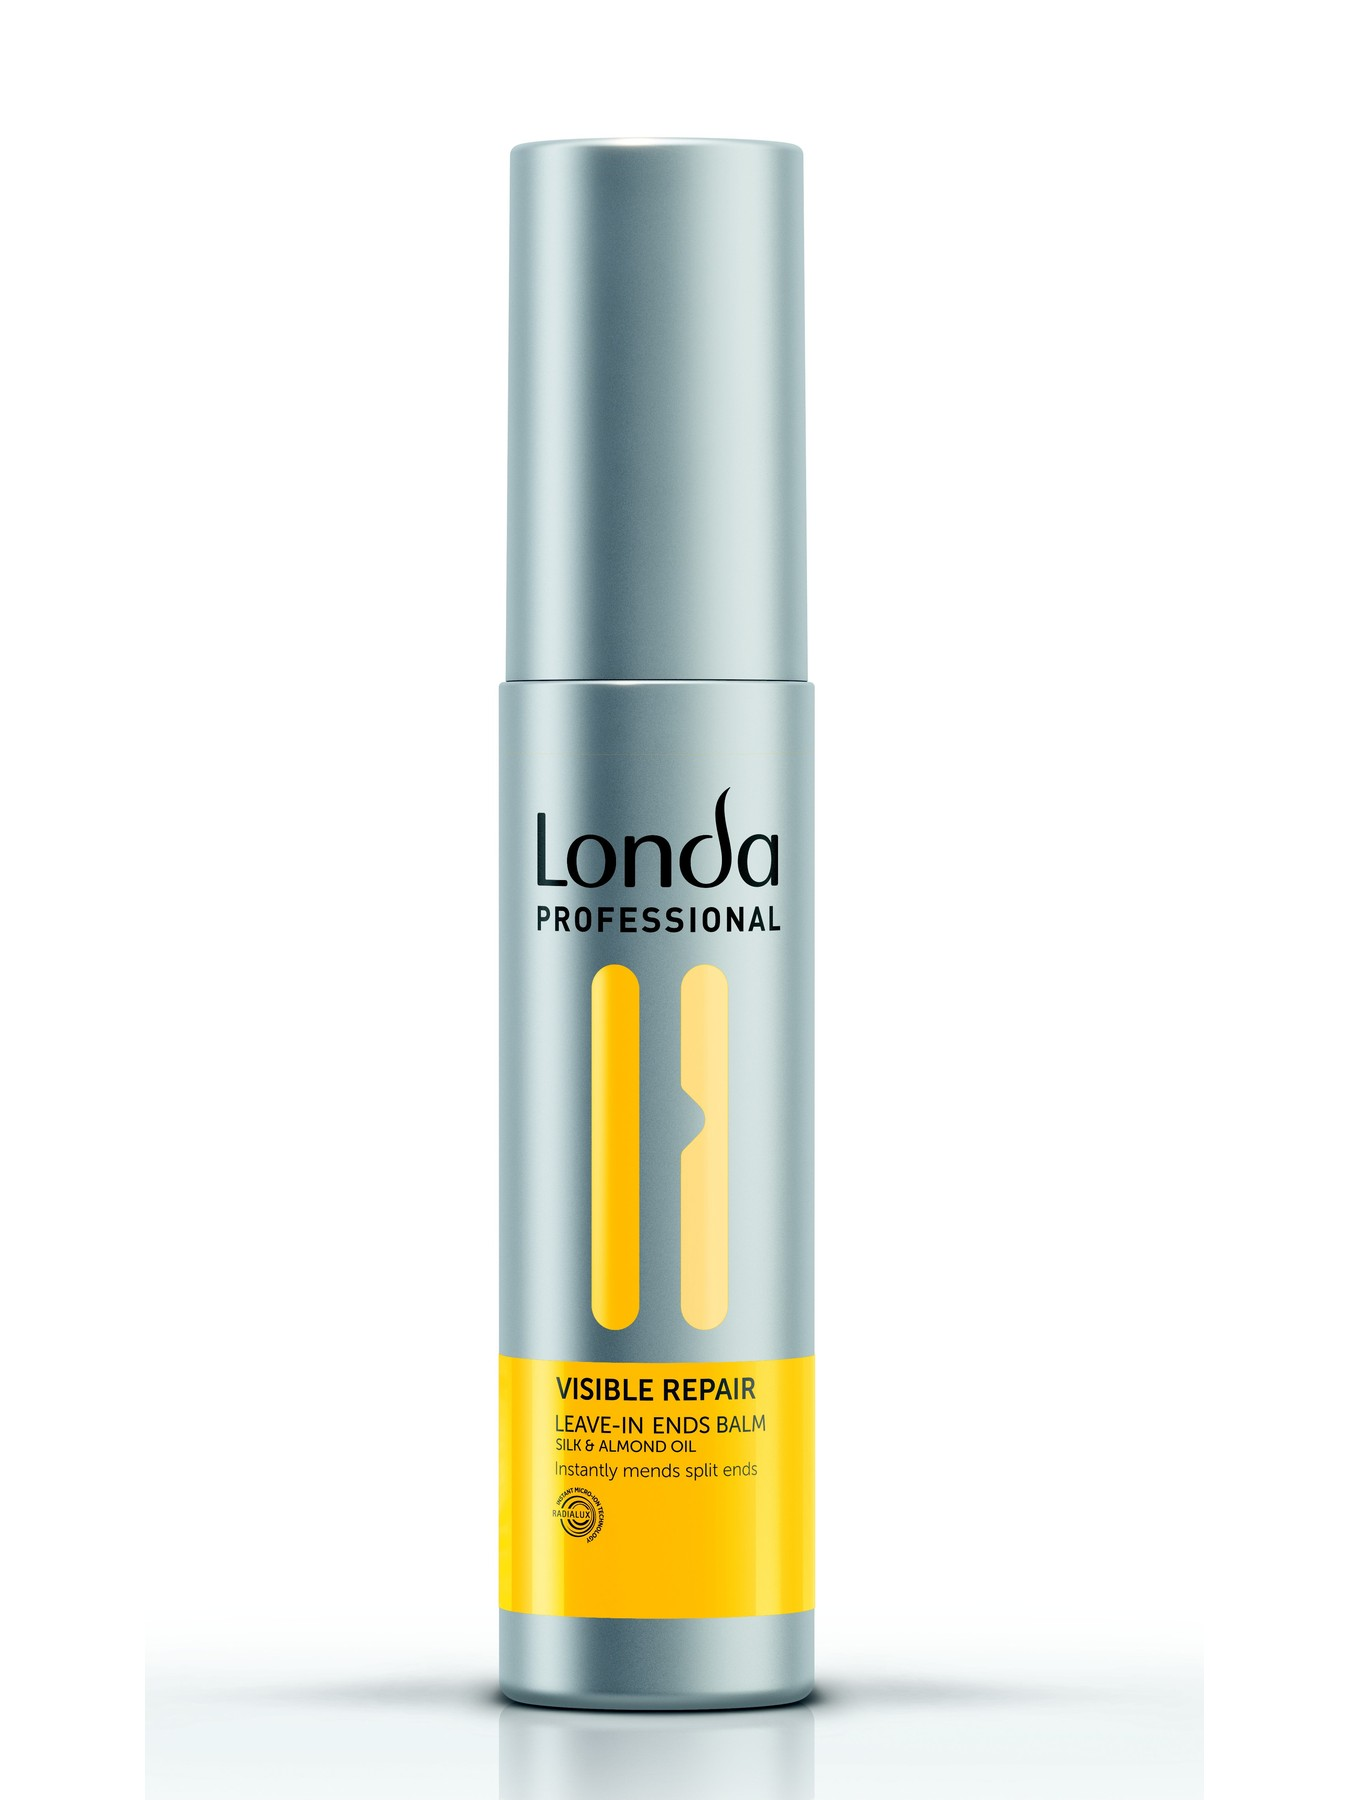 Londa Professional Visible Repair Lip Damaged Hair With A Leave-in 250 Ml